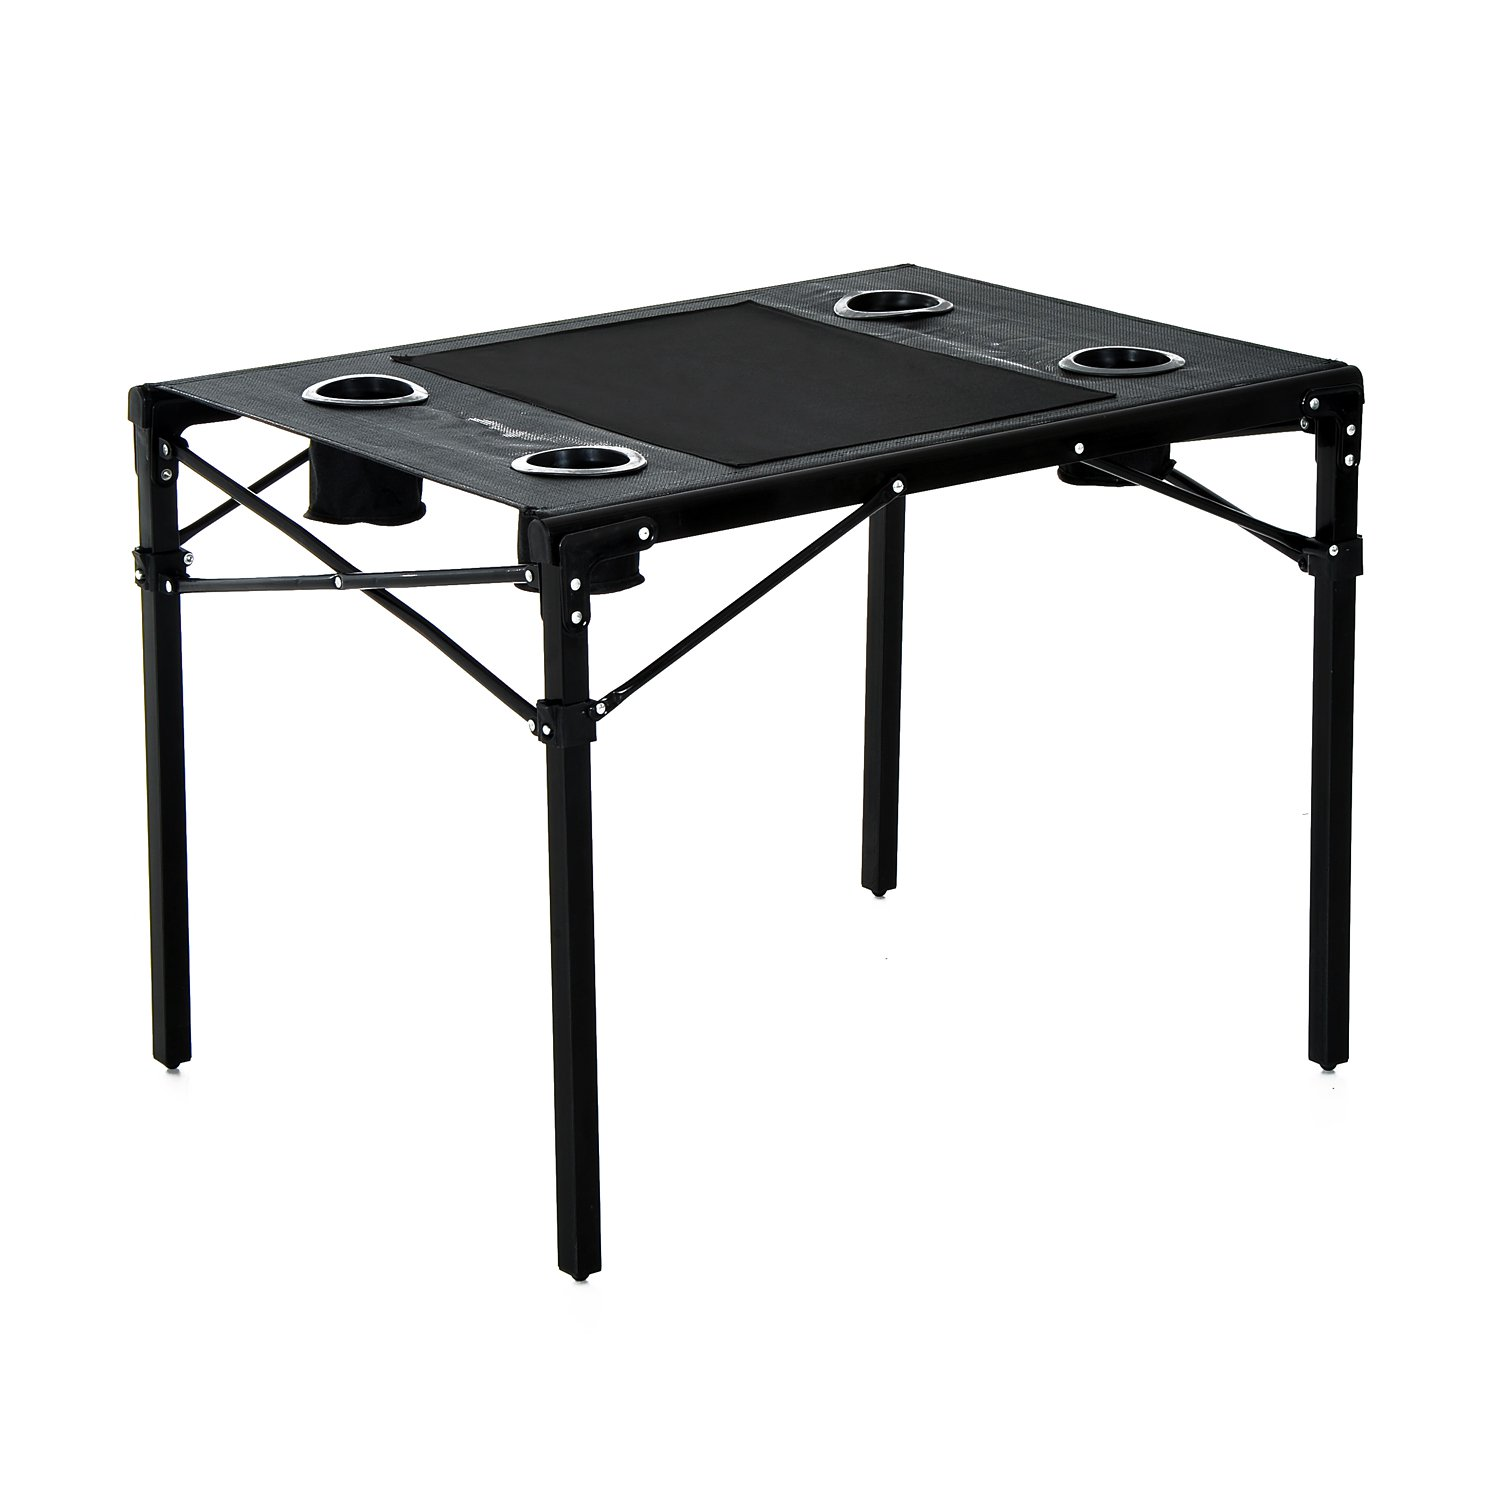 HomCom Folding Camping Table with Cup Holders Black by Aosom LLC